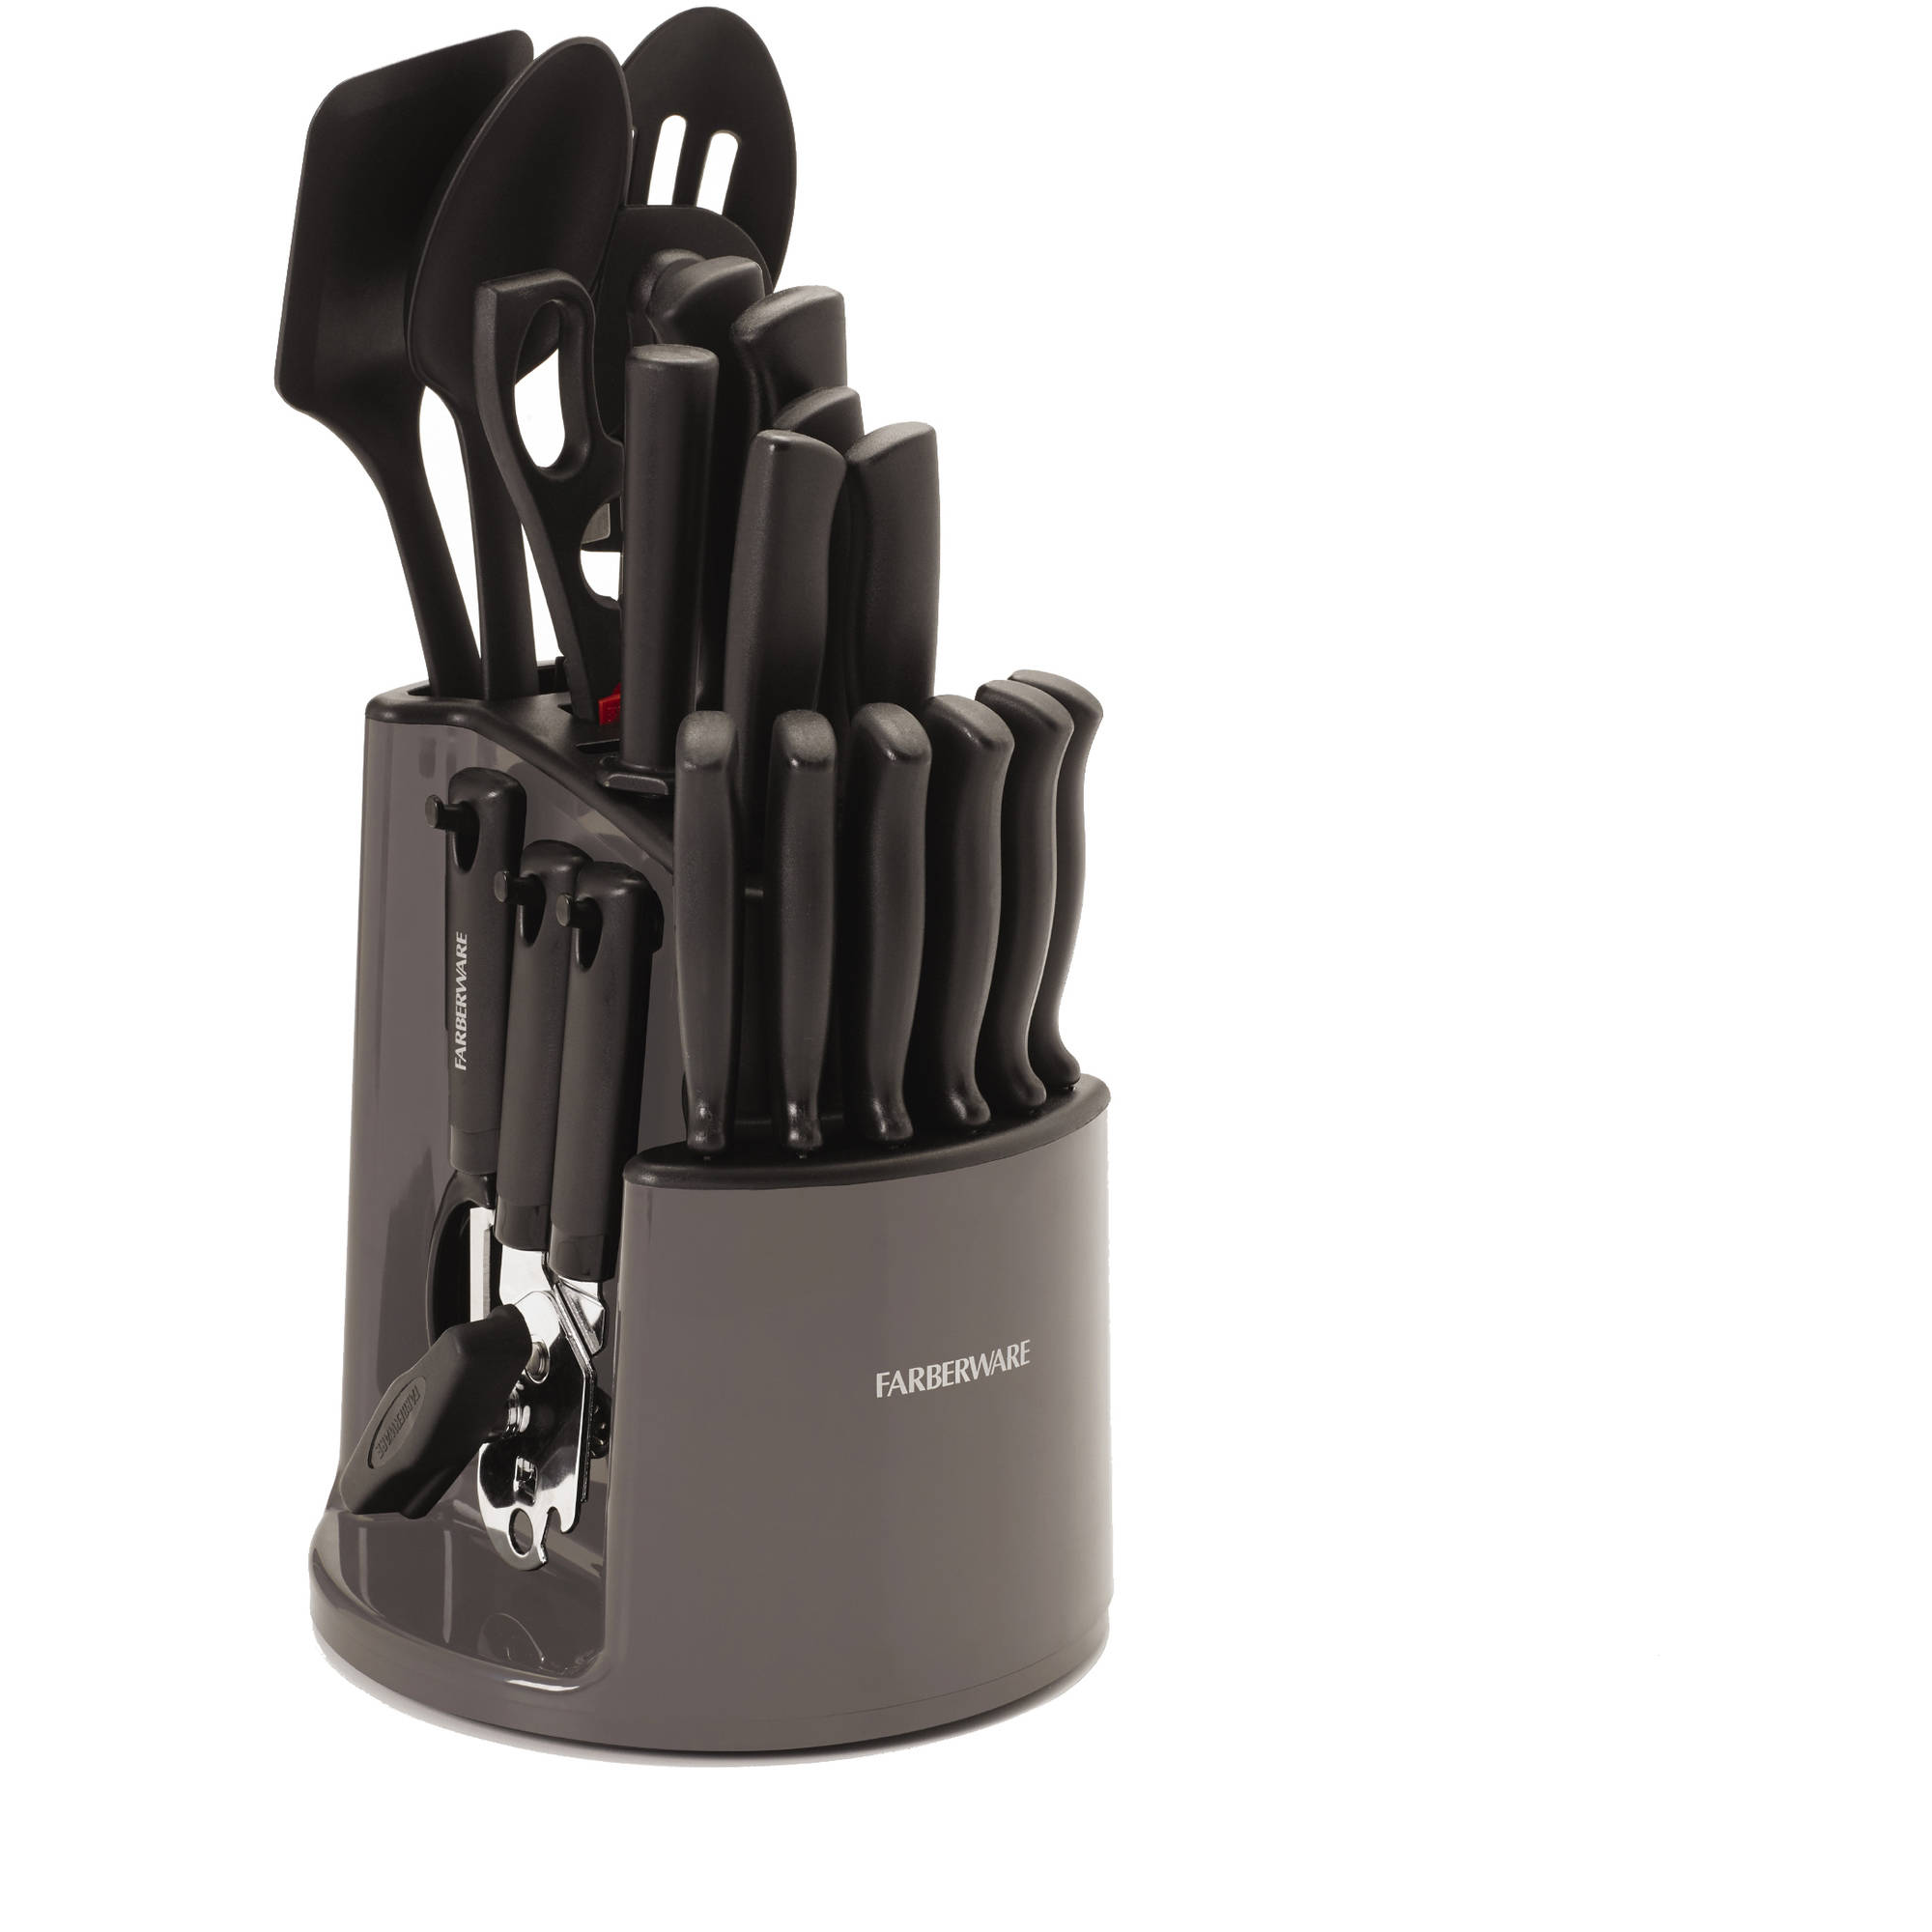 fascinating Spinning Utensil Caddy Part - 15: Farberware 30-Piece Spin N Store Knife and Kitchen Utensil Set - Walmart.com